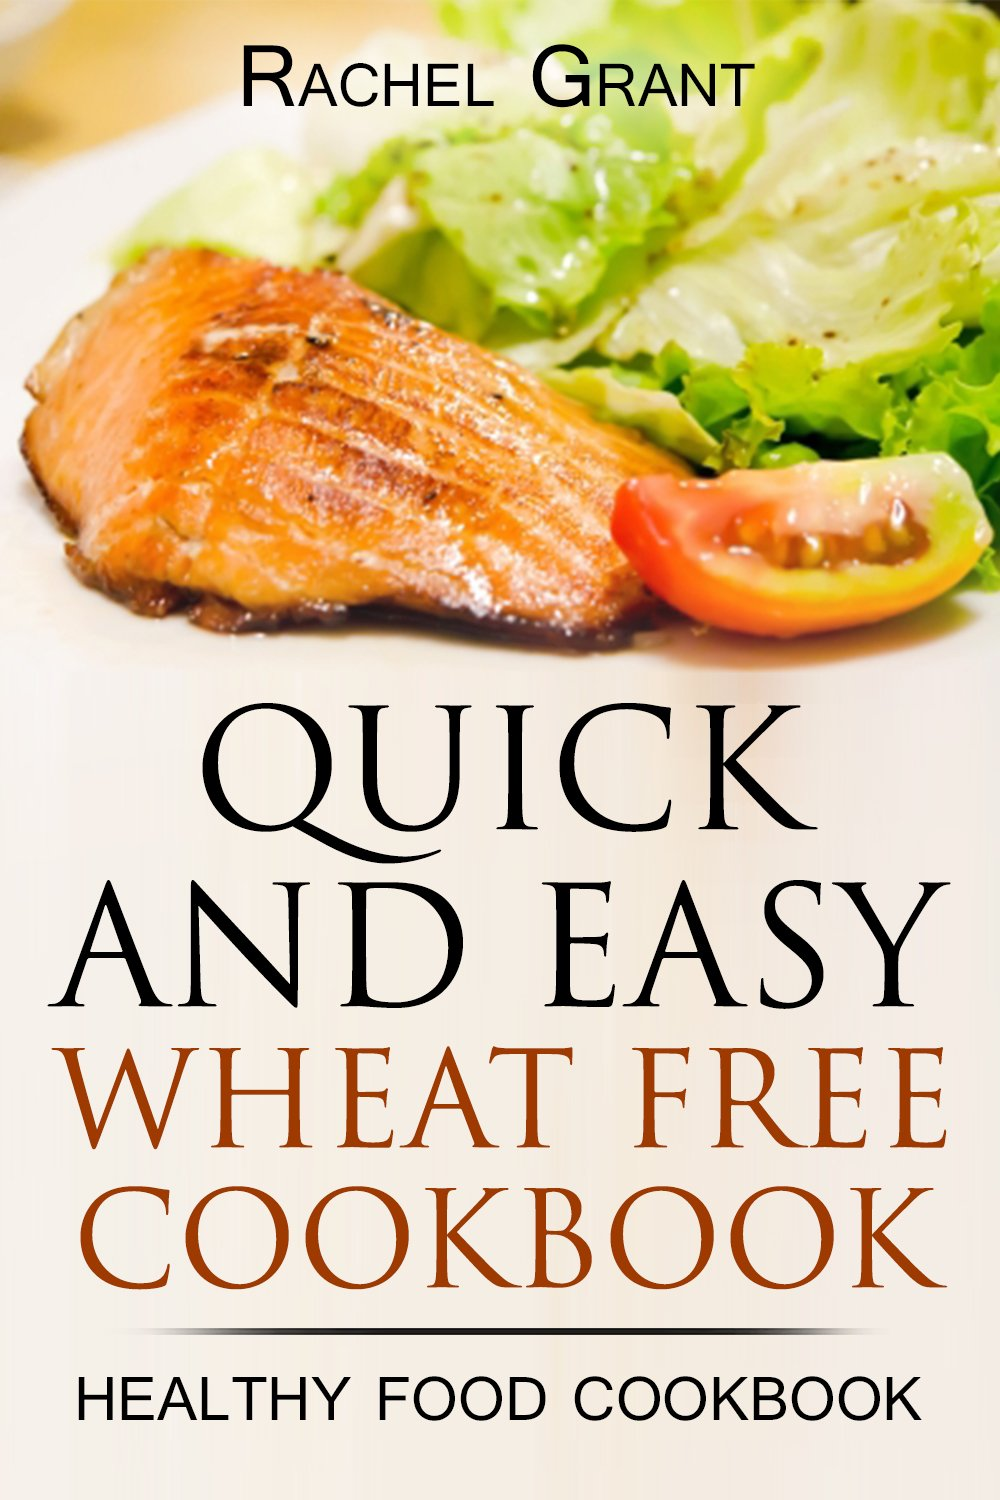 WHEAT FREE COOKBOOK- QUICK AND EASY